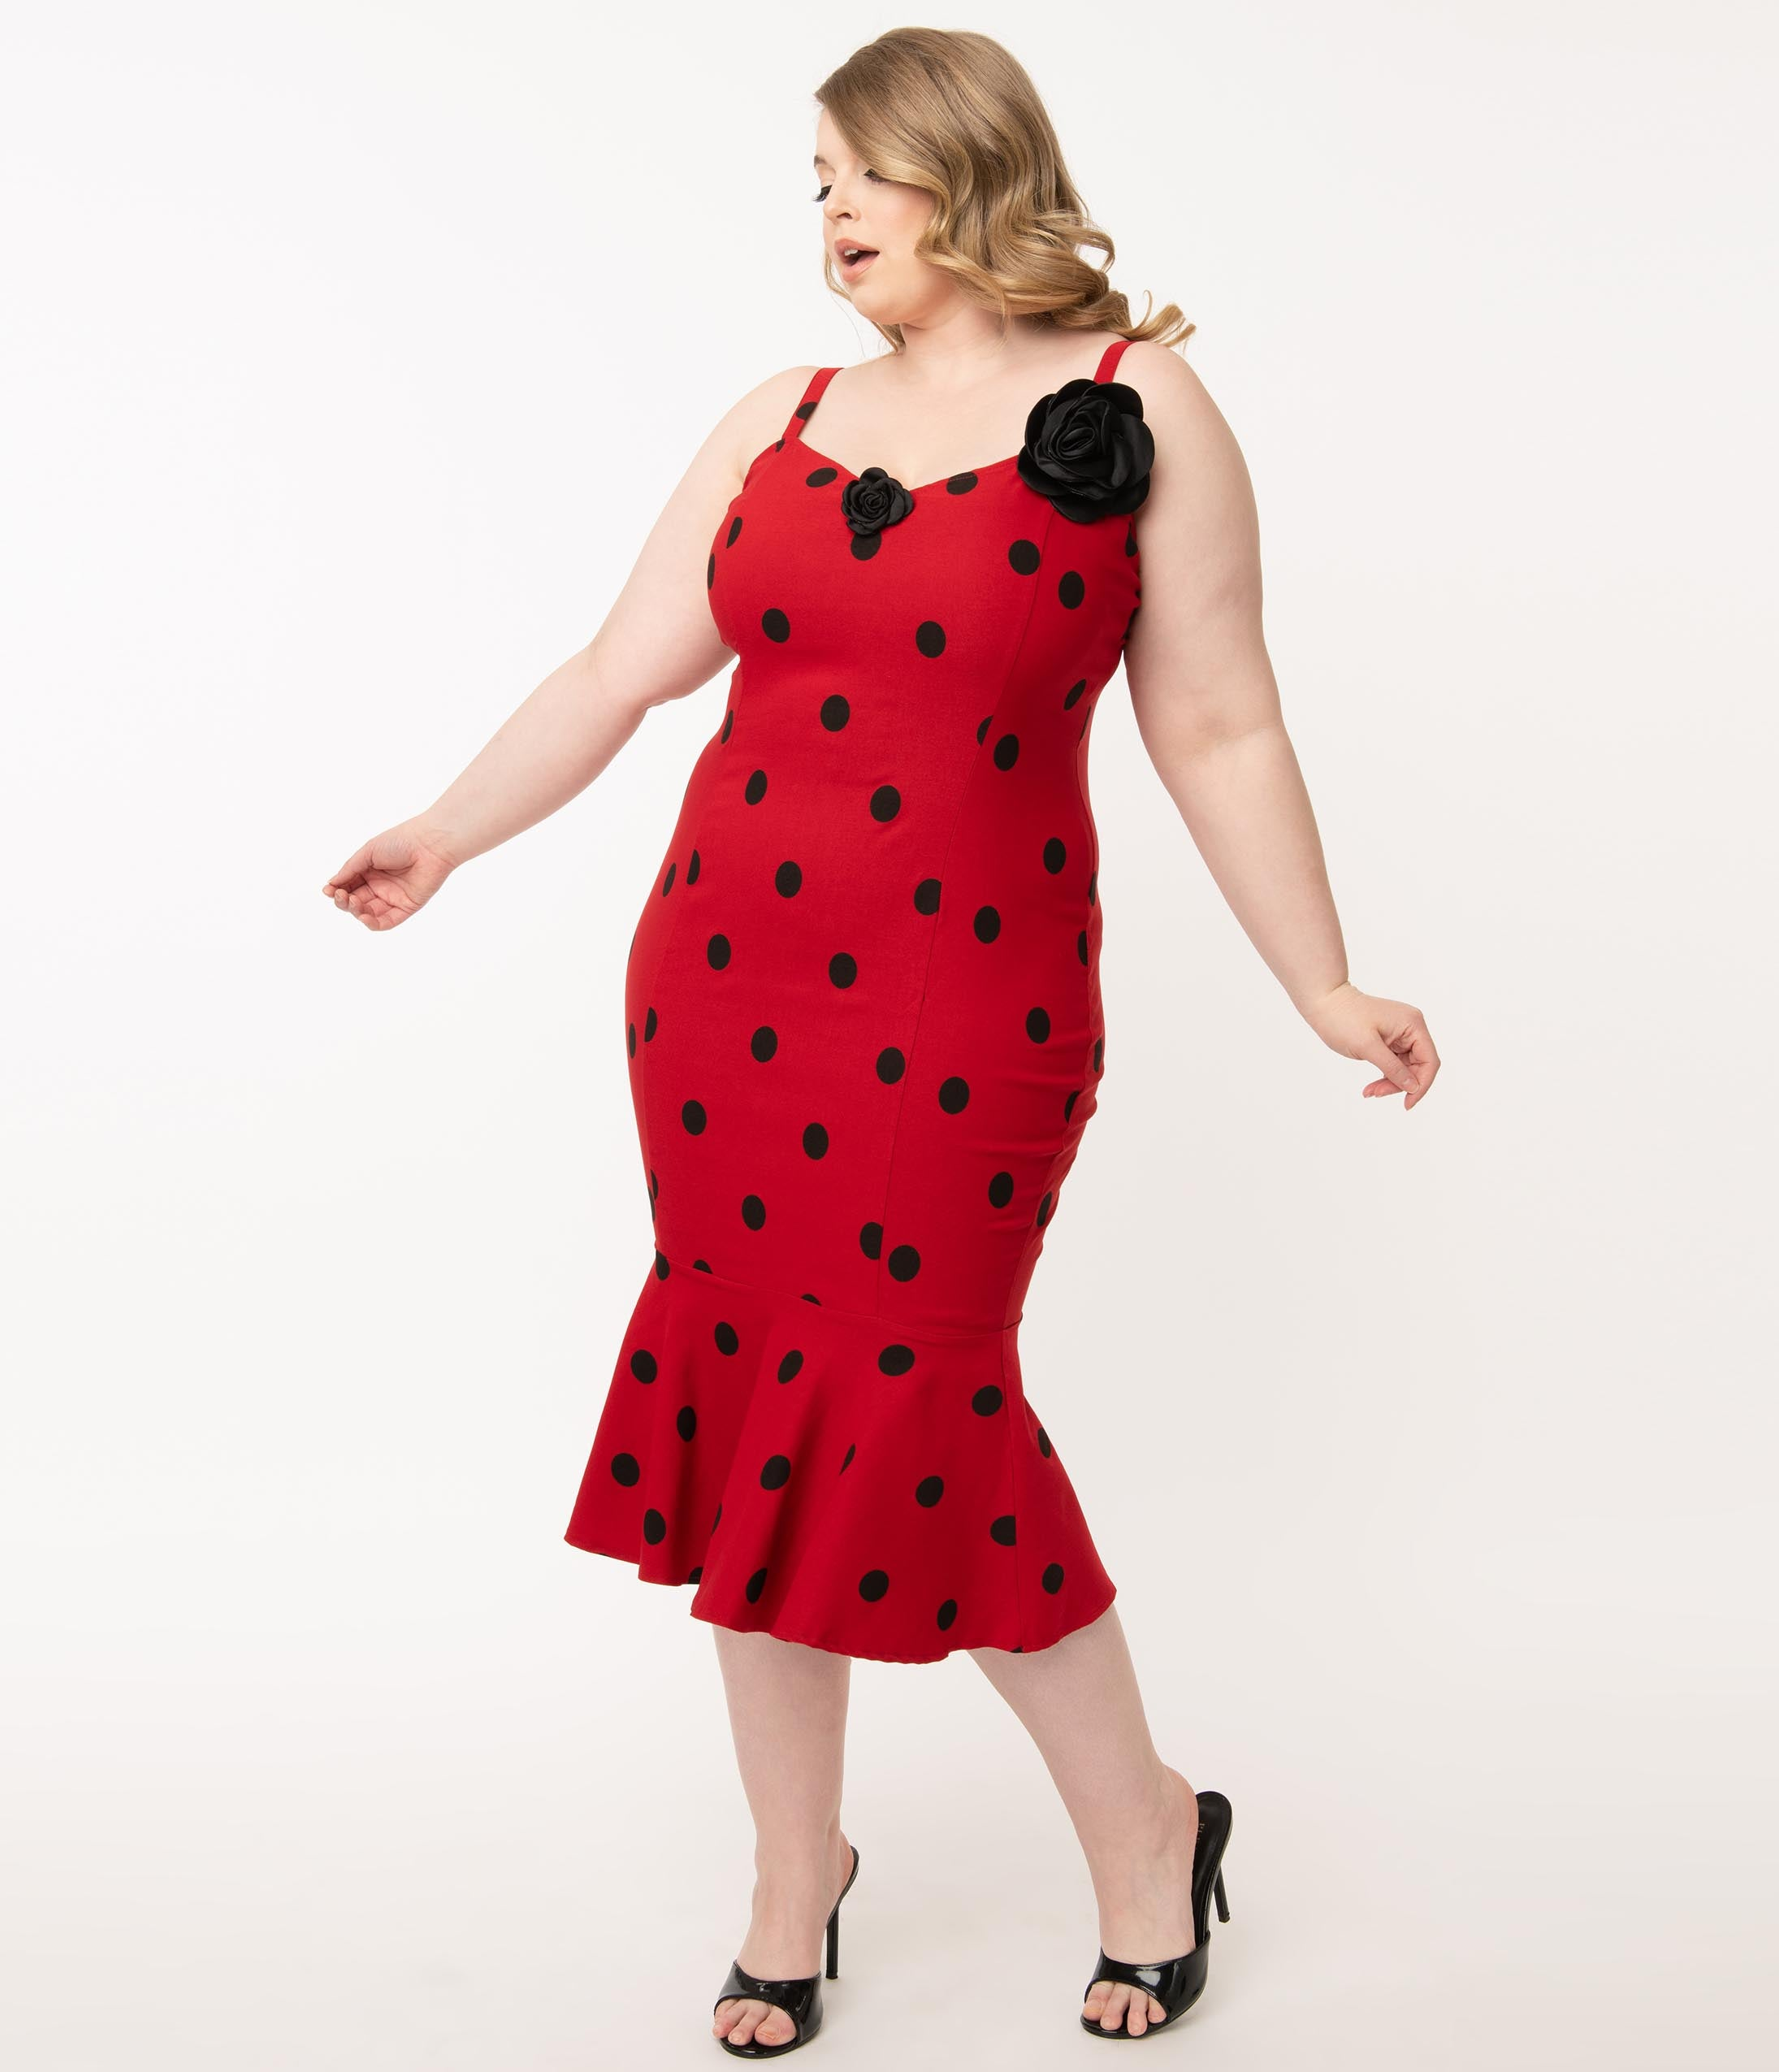 1950s Plus Size Dresses, Swing Dresses Grease X Unique Vintage Plus Size Red  Black Polka Dot Rizzo Wiggle Dress $98.00 AT vintagedancer.com